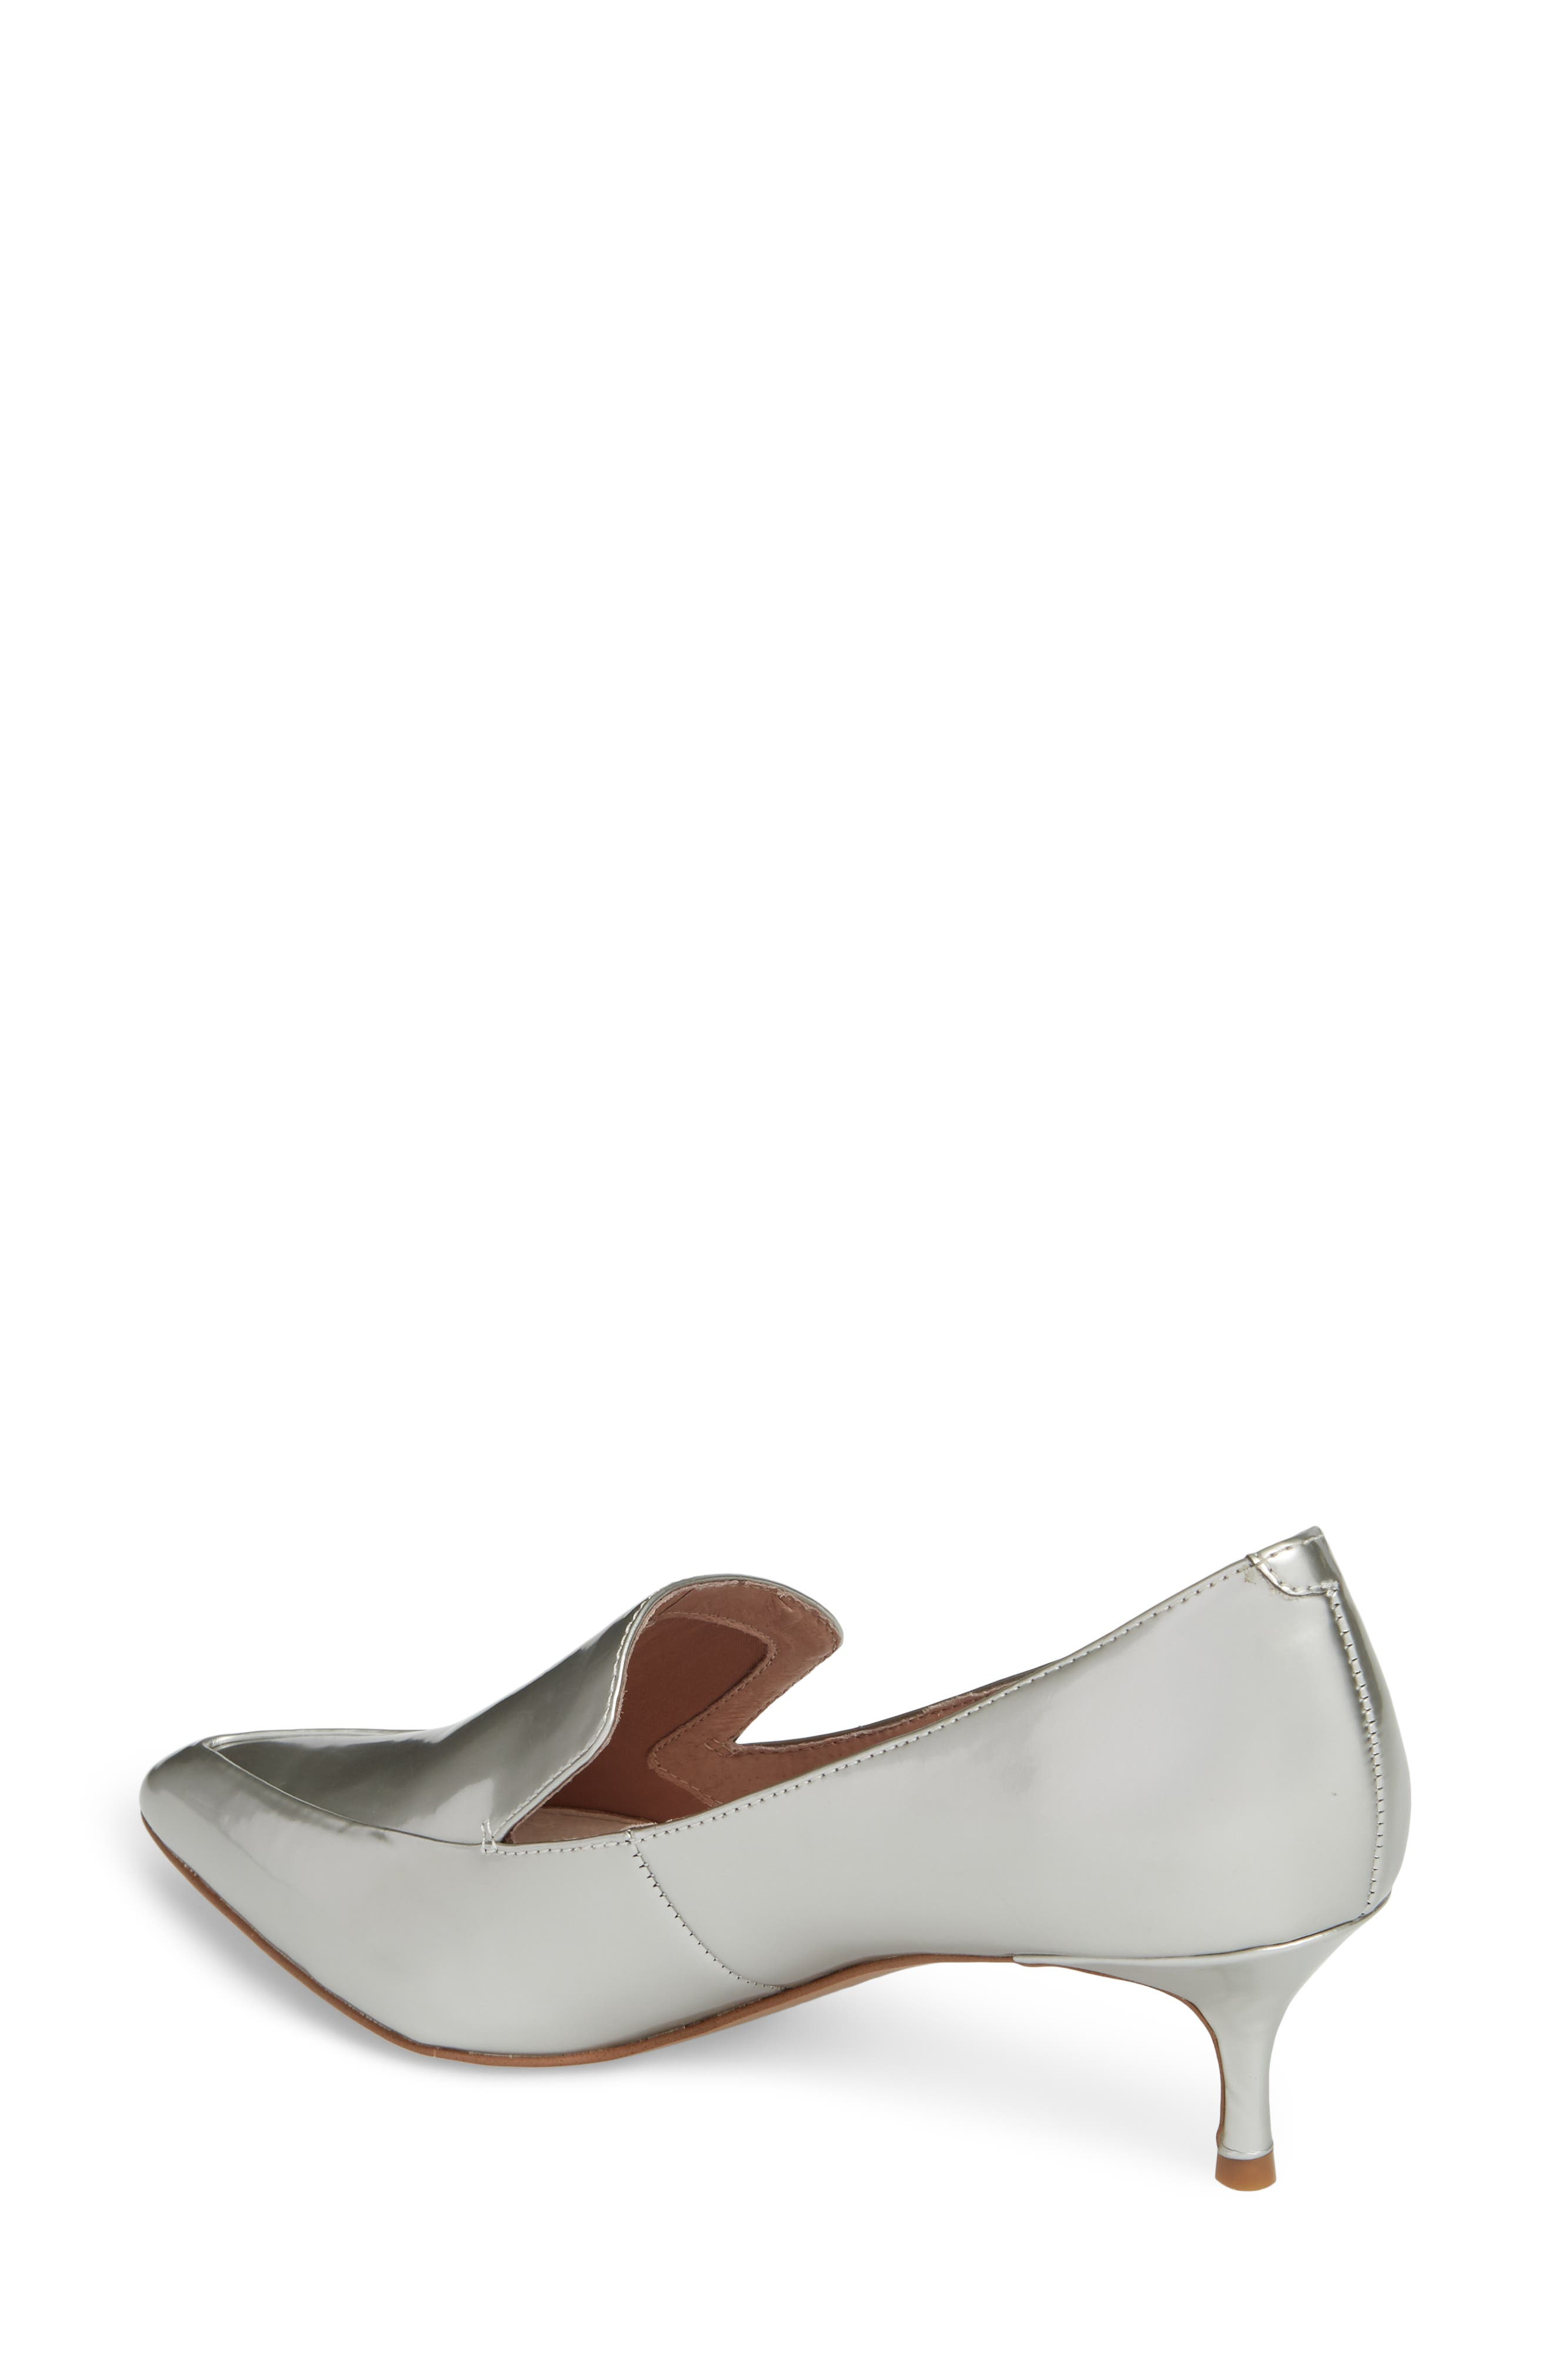 Shea Loafer Pump,                             Alternate thumbnail 2, color,                             Silver Metallic Leather